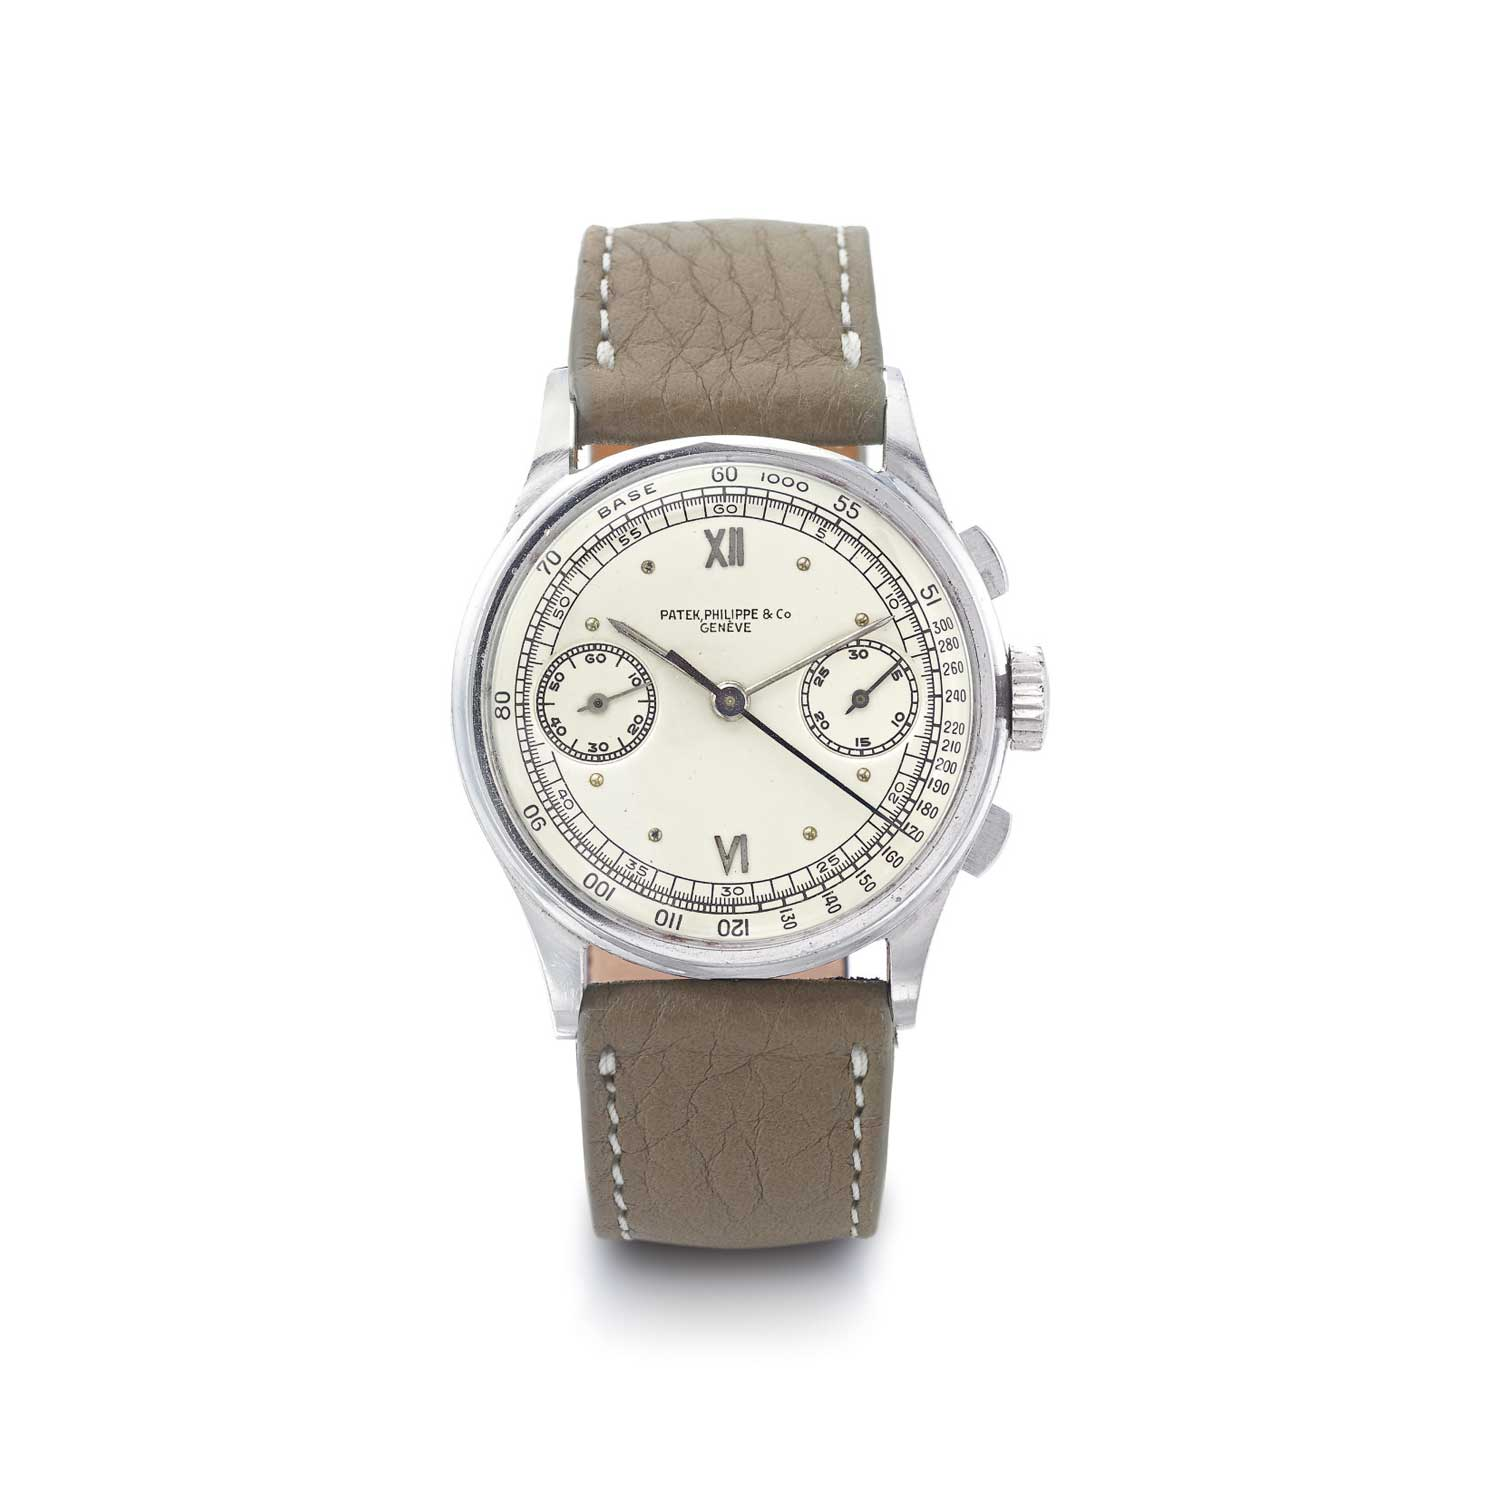 1947 Patek Philippe ref. 130 steel chronograph with applied Roman six and 12 on the dial (Image: Sothebys.com)